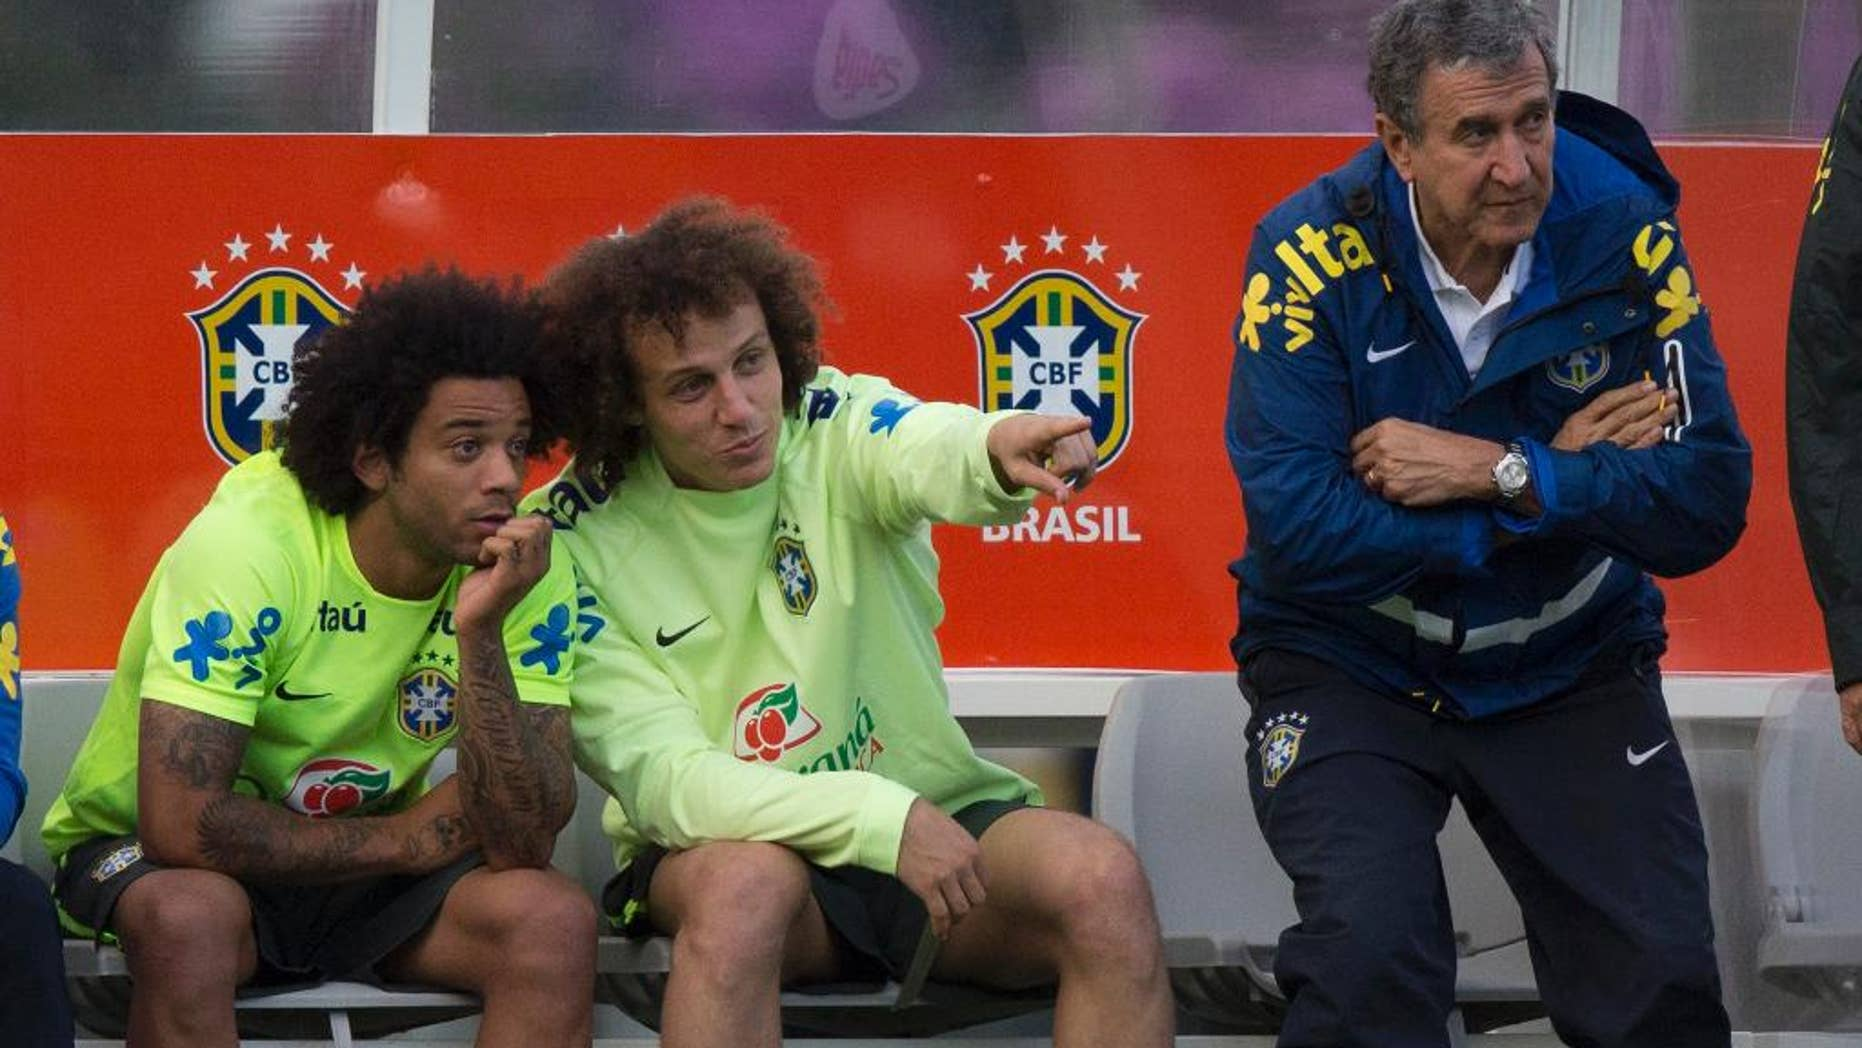 Brazil national soccer team members, David Luiz, center, talks with Marcelo, left, as the Brazil's team coordinator Carlos Alberto Parreira stands next to them, during a practice session at the Granja Comary training center, in Teresopolis, Brazil, Sunday, July 6, 2014. Brazil will face Germany in their World Cup semifinals' match, without superstar soccer player Neymar. (AP Photo/Leo Correa)